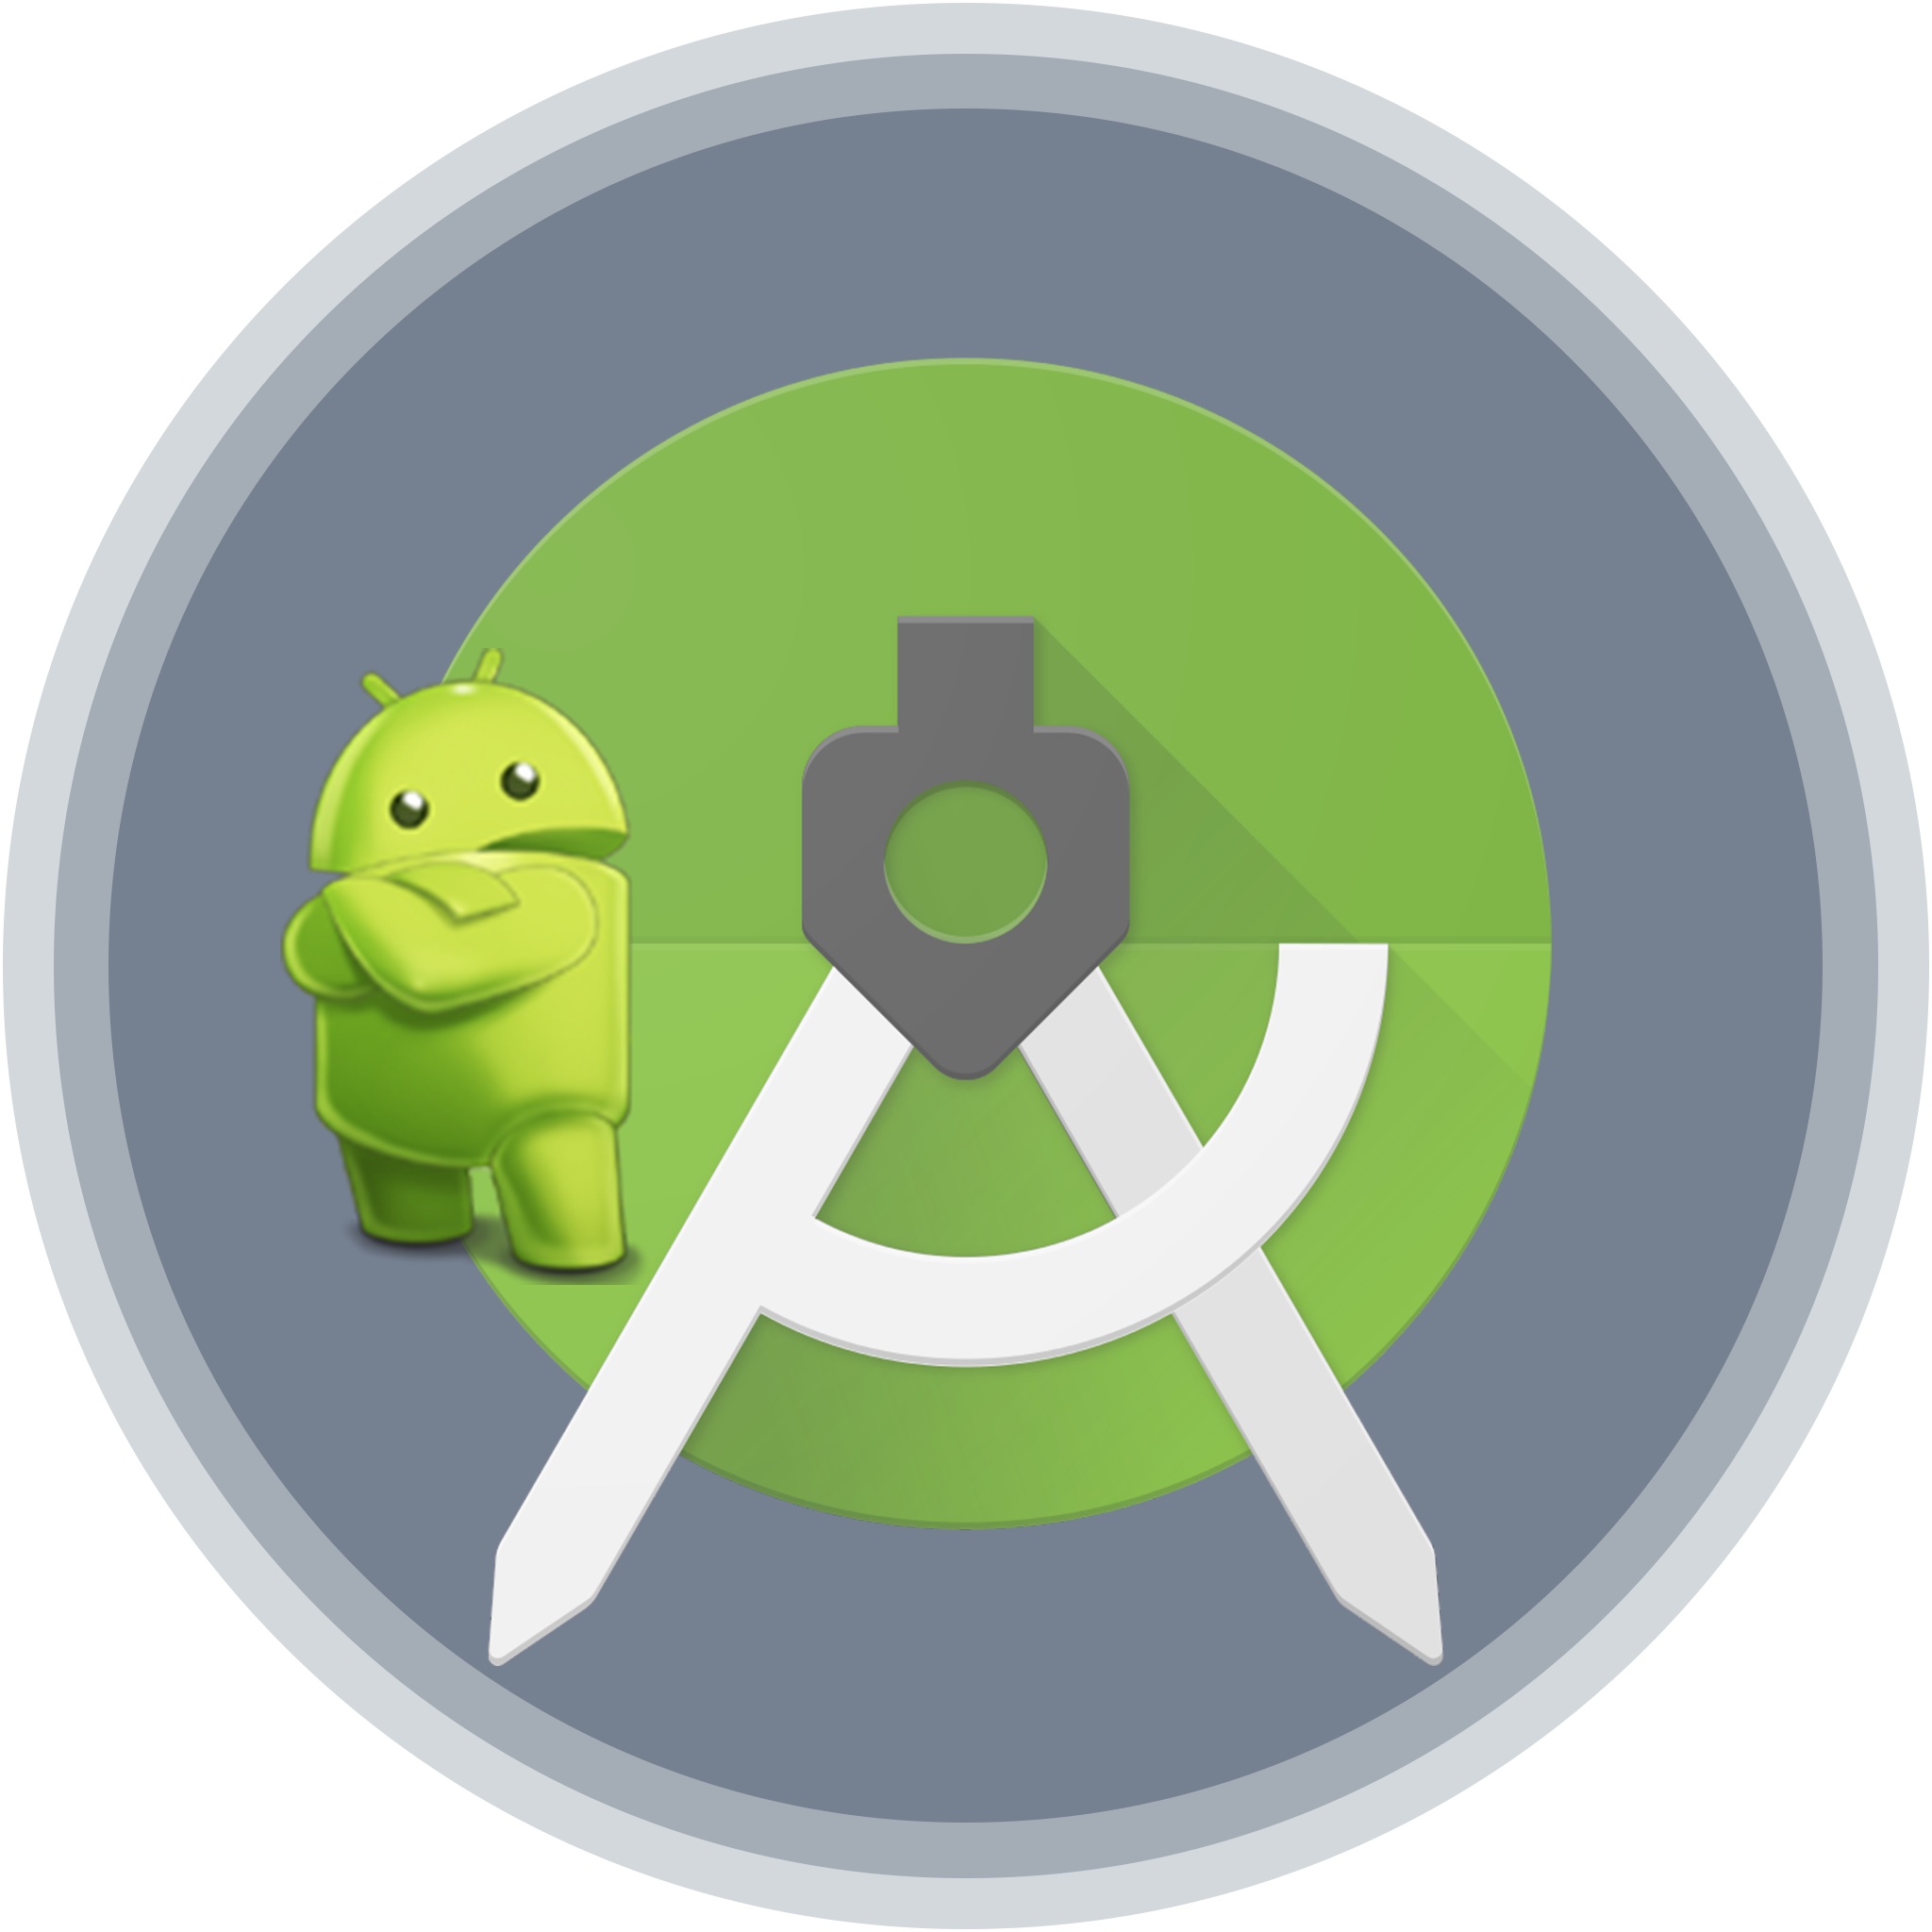 Features of Android studio